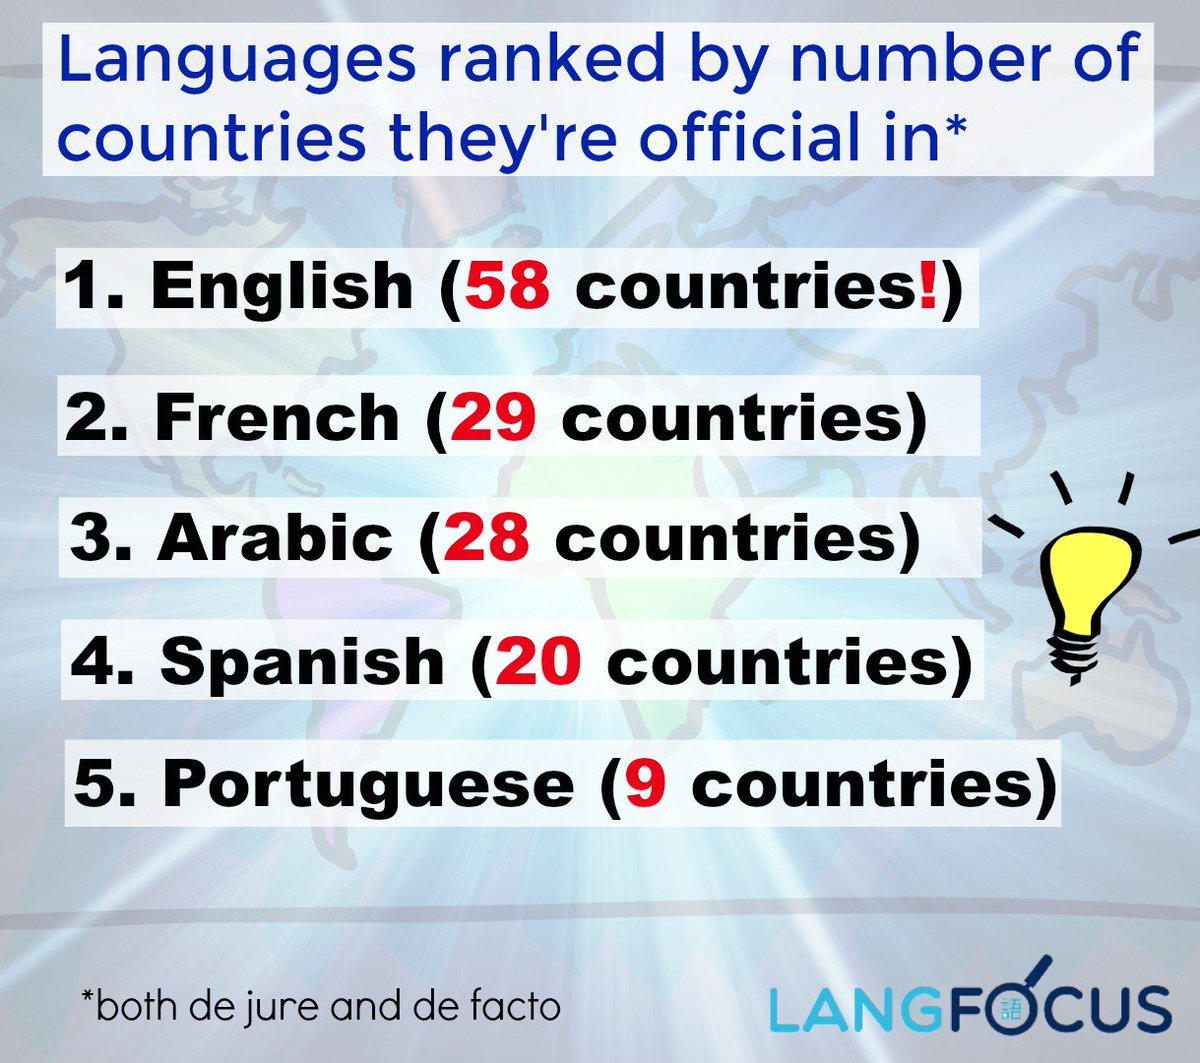 Langfocus Paul On Twitter Languages Ranked By The Number Of - Languages by number of countries